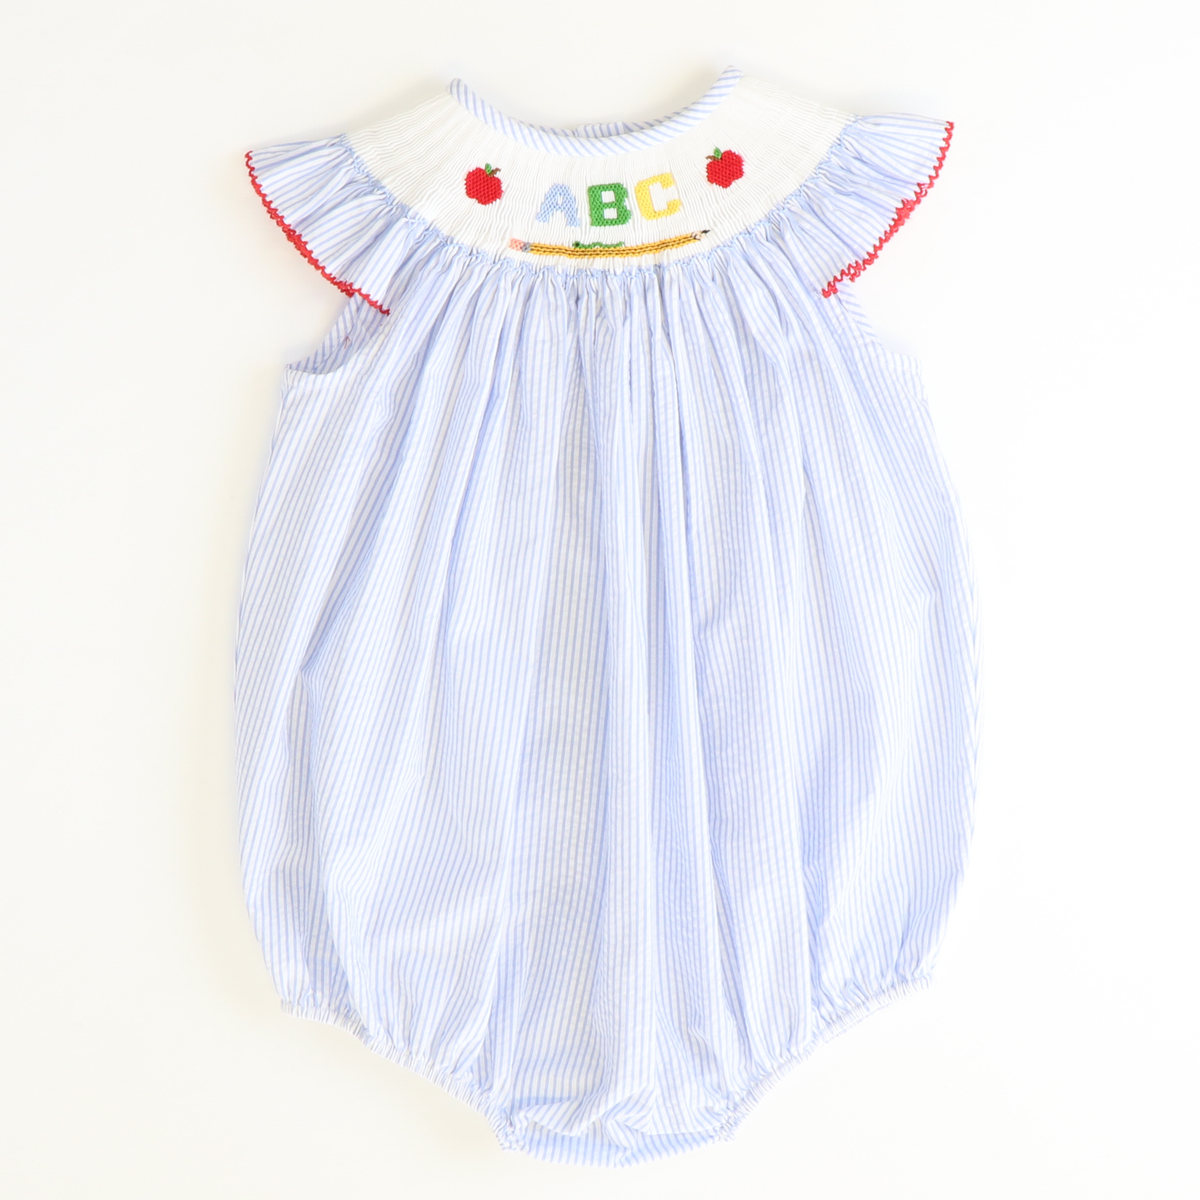 Smocked  Apples & ABC Bubble - Light Blue Stripe Seersucker